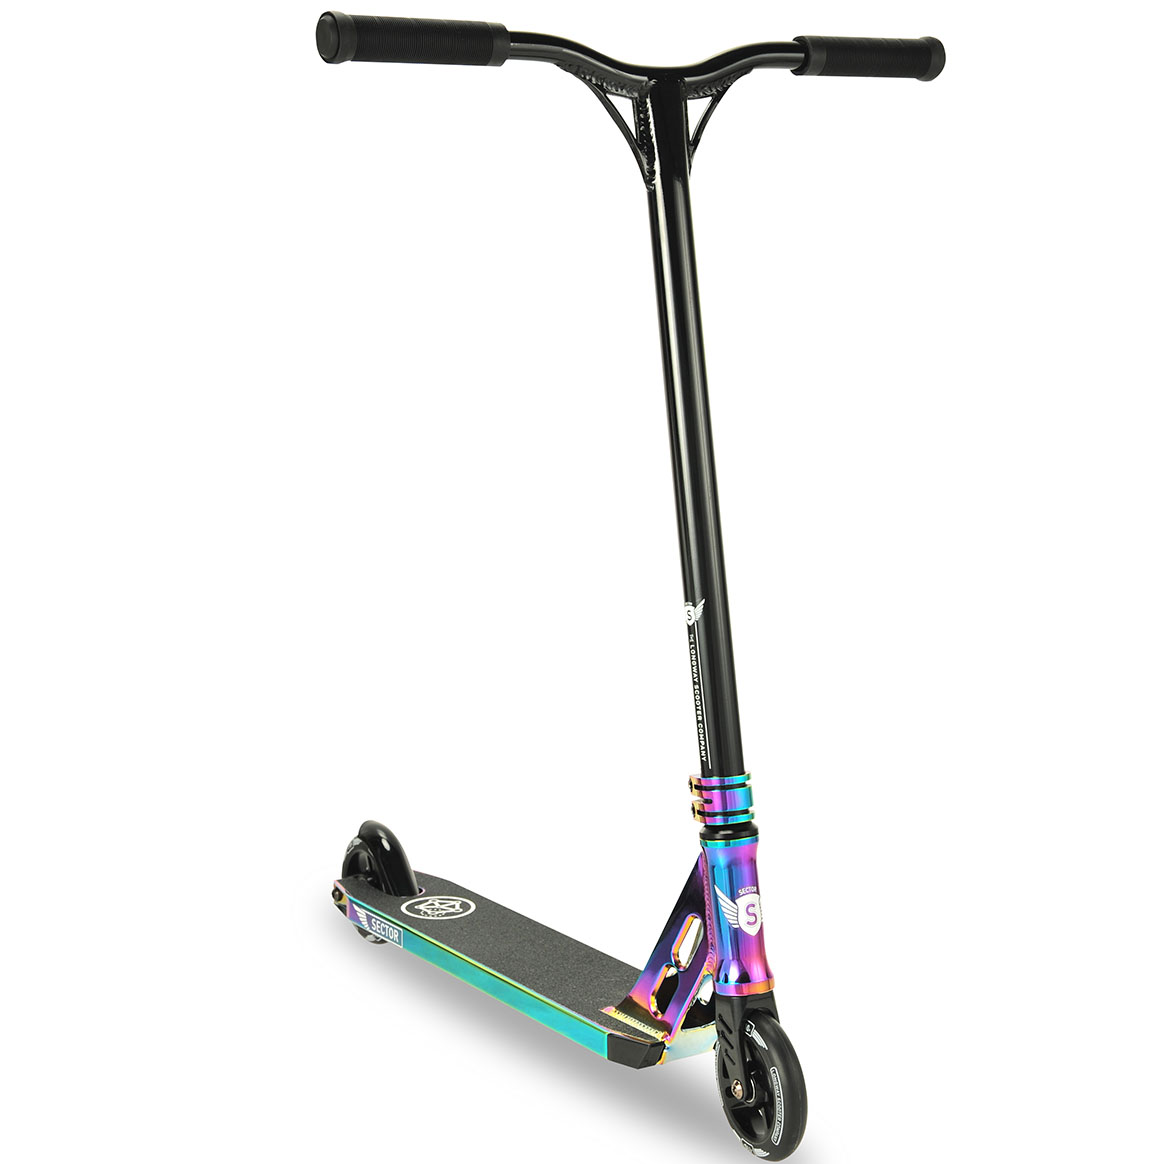 longway sector neo chrome pro stunt kids kick scooter. Black Bedroom Furniture Sets. Home Design Ideas